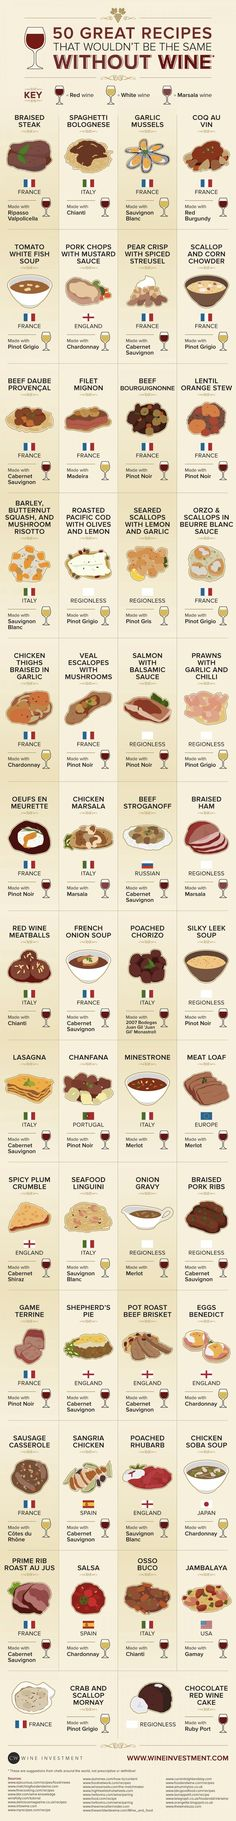 Infographic: 50 International Dishes That Wouldn't Be The Same Without Wine - DesignTAXI.com